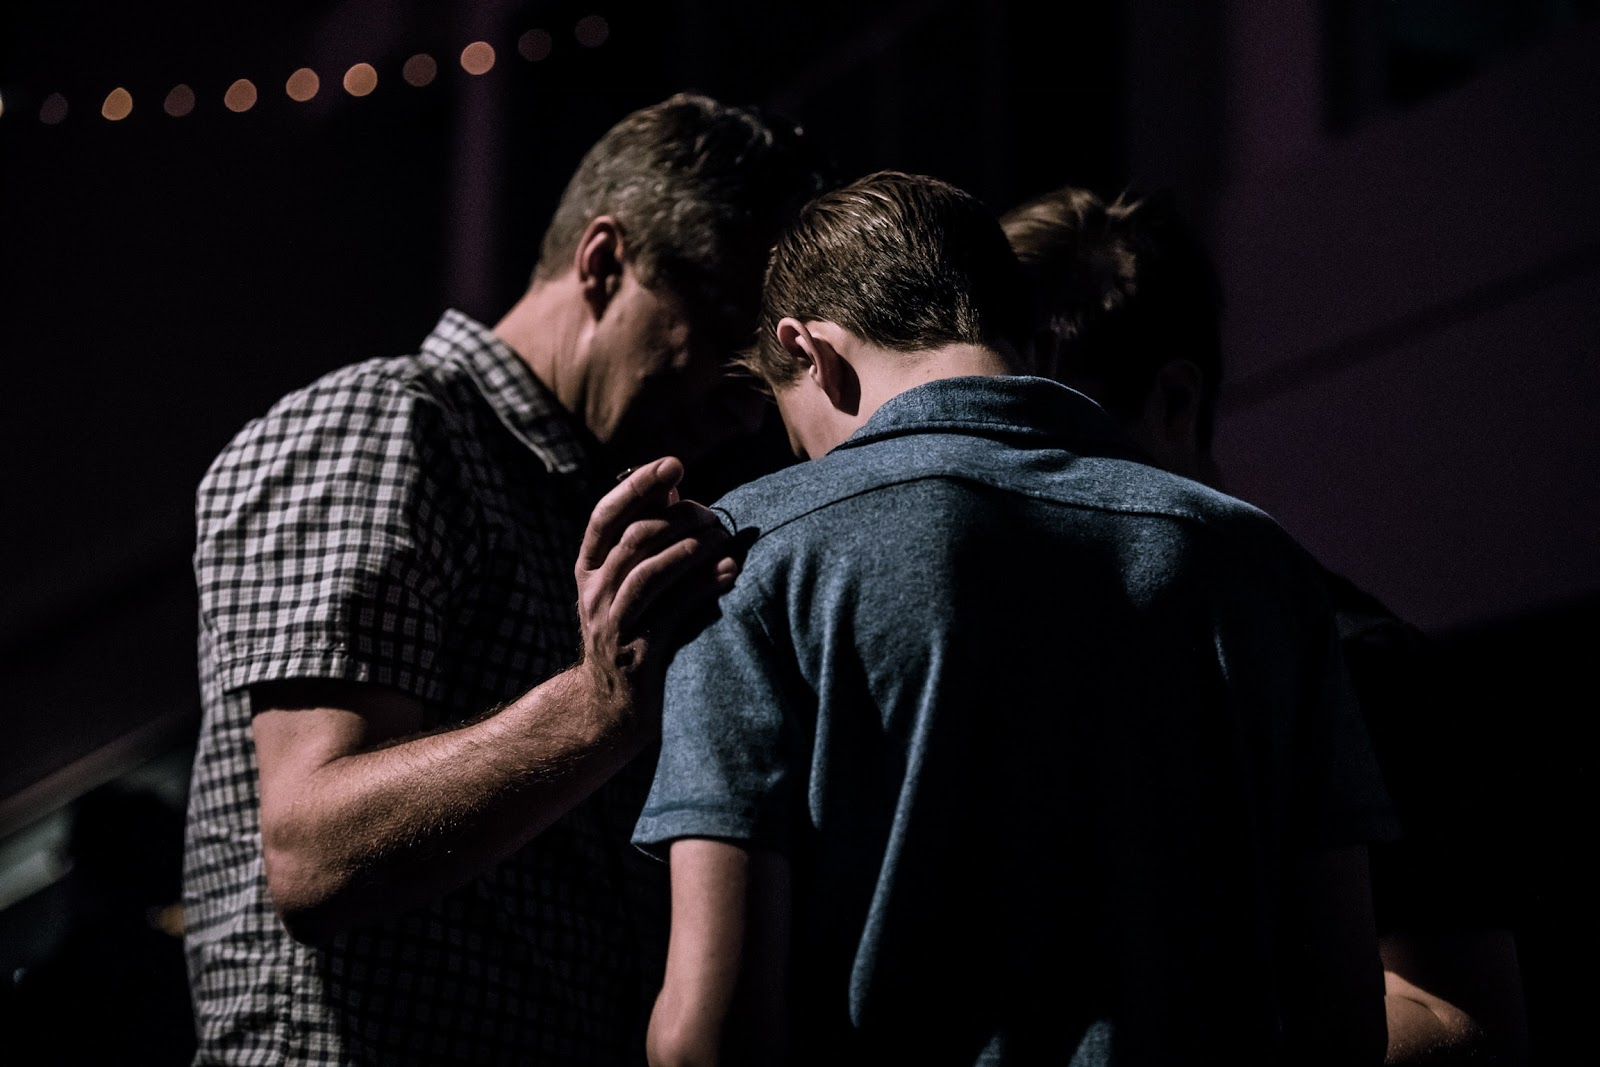 A group of men praying for an unbeliever.